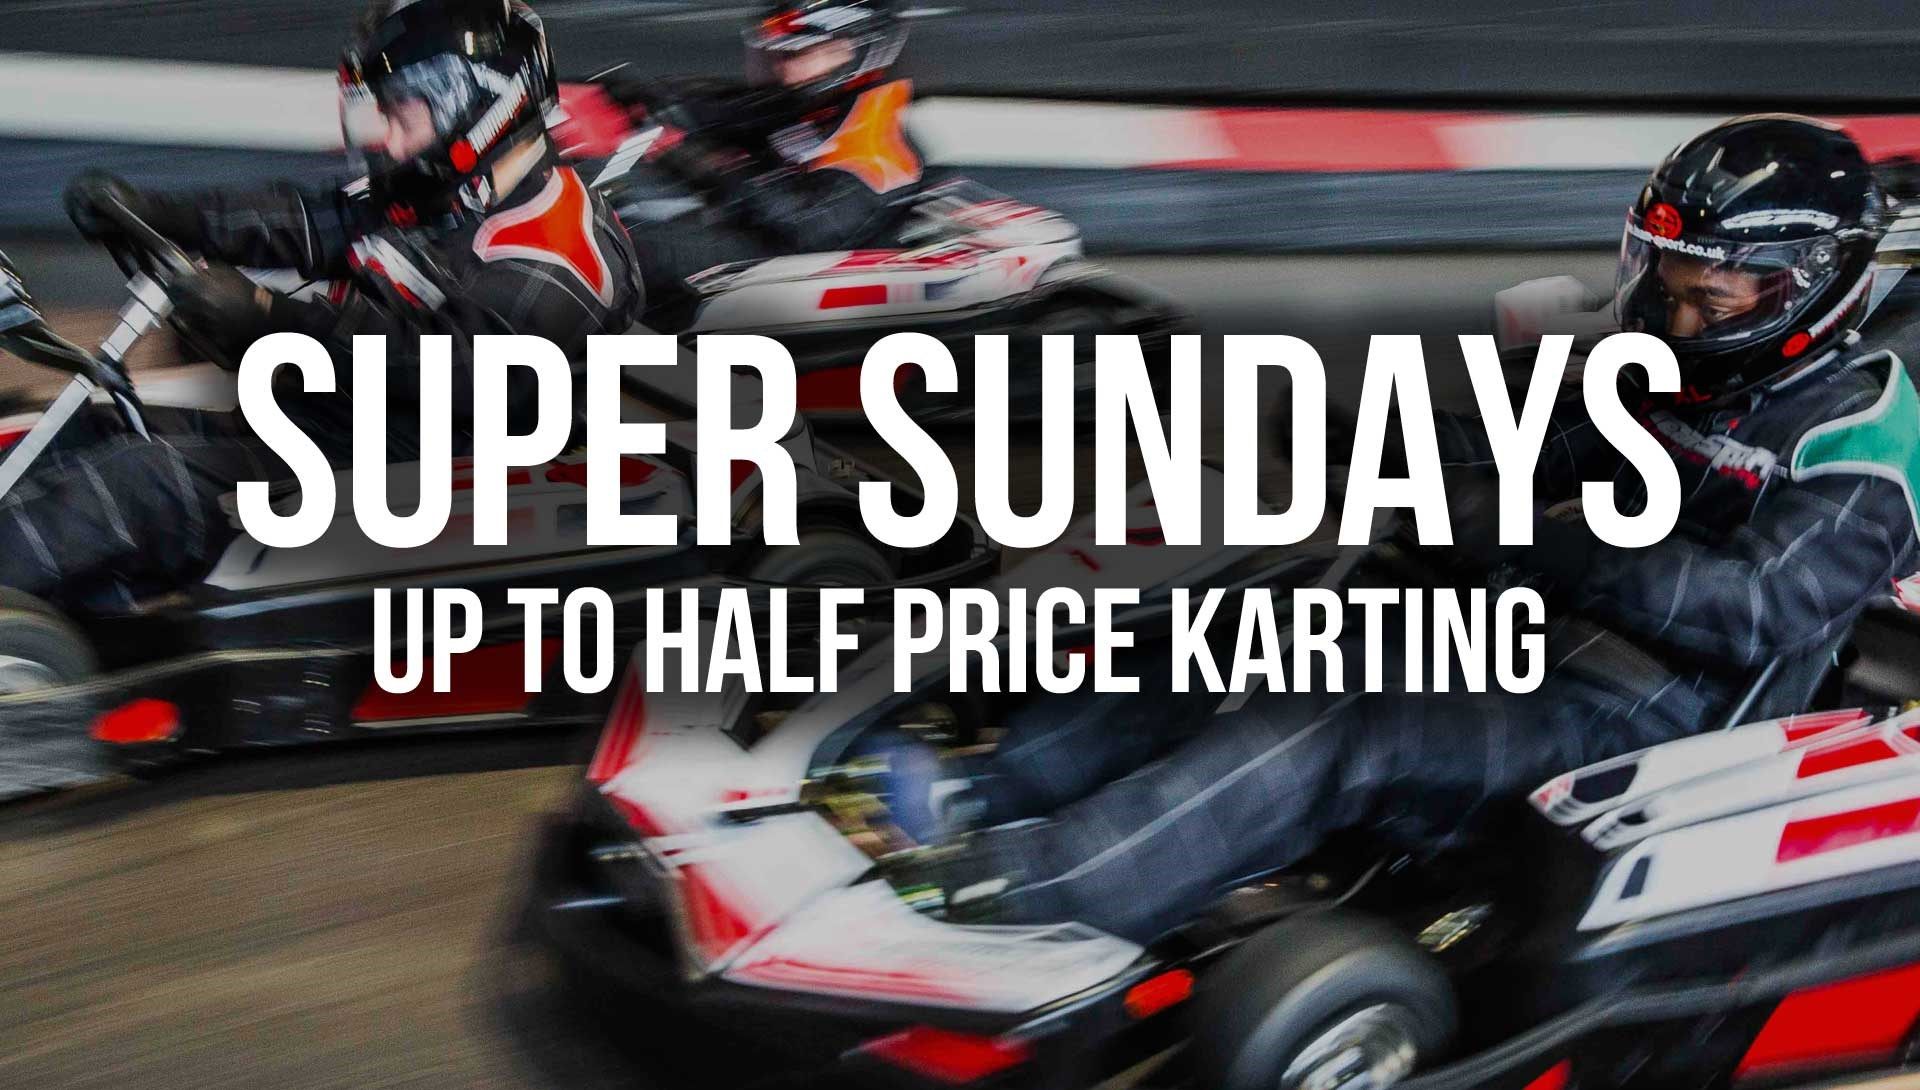 GO KARTING OFFERS - SUPER SUNDAYS